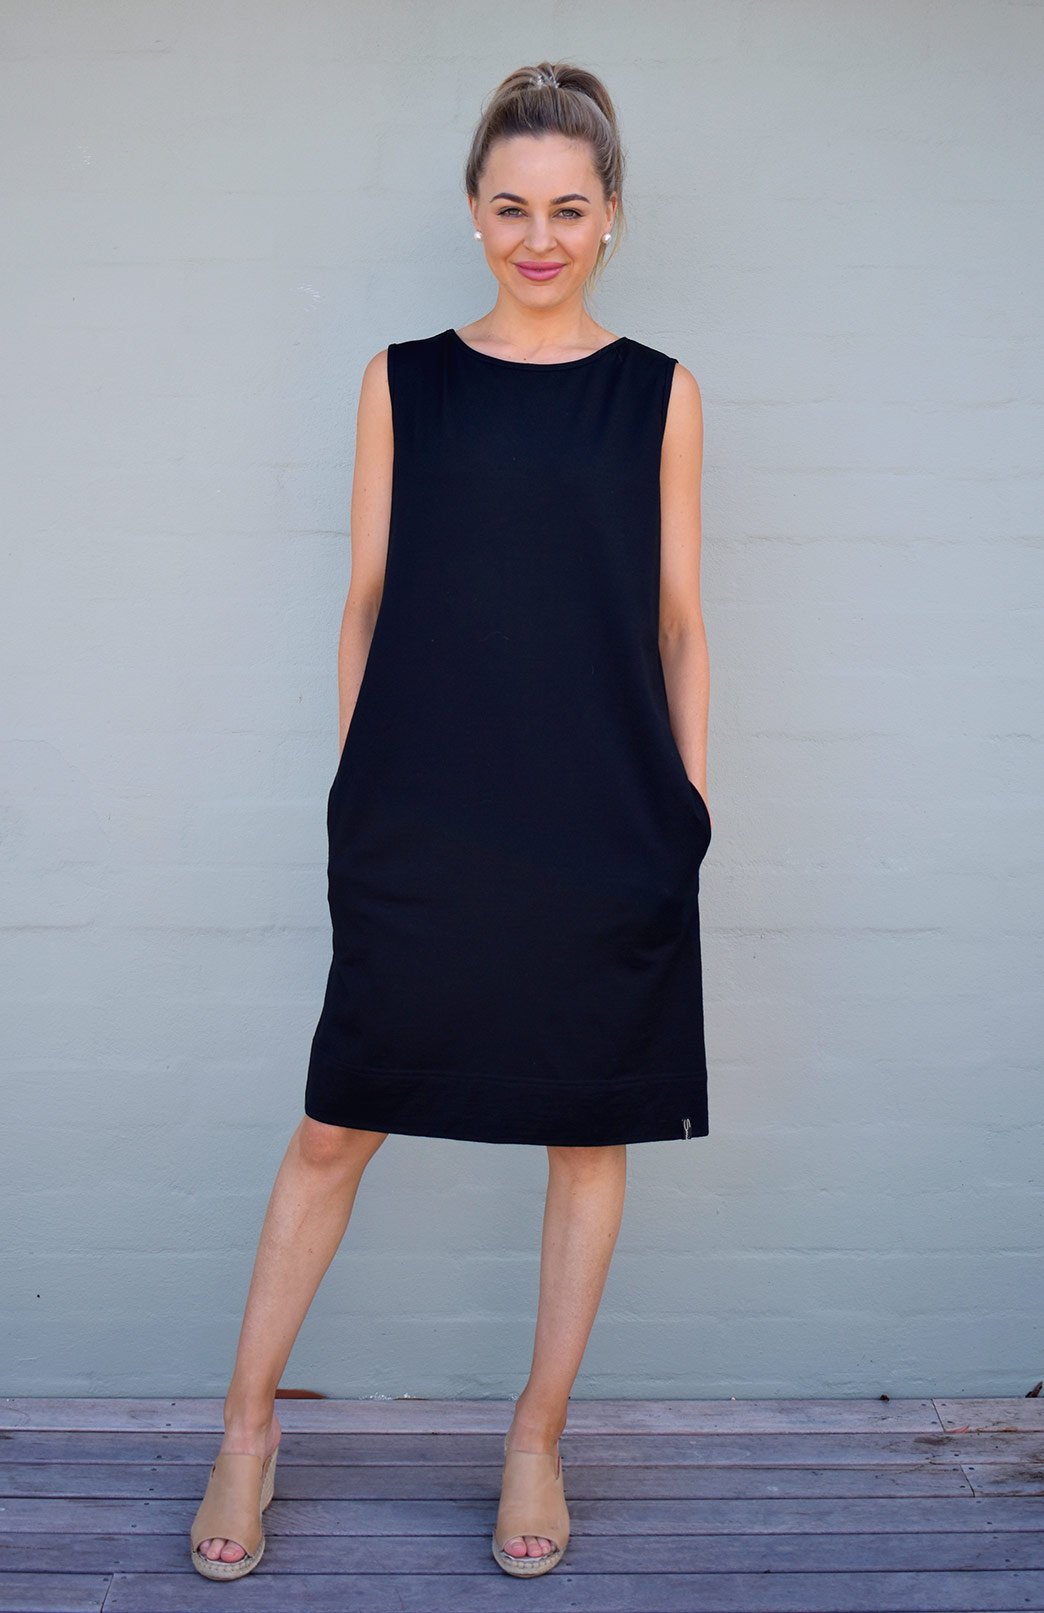 Holly Dress - Women's Black Merino Wool Classic Sleeveless Knee Length Dress with side pockets - Smitten Merino Tasmania Australia